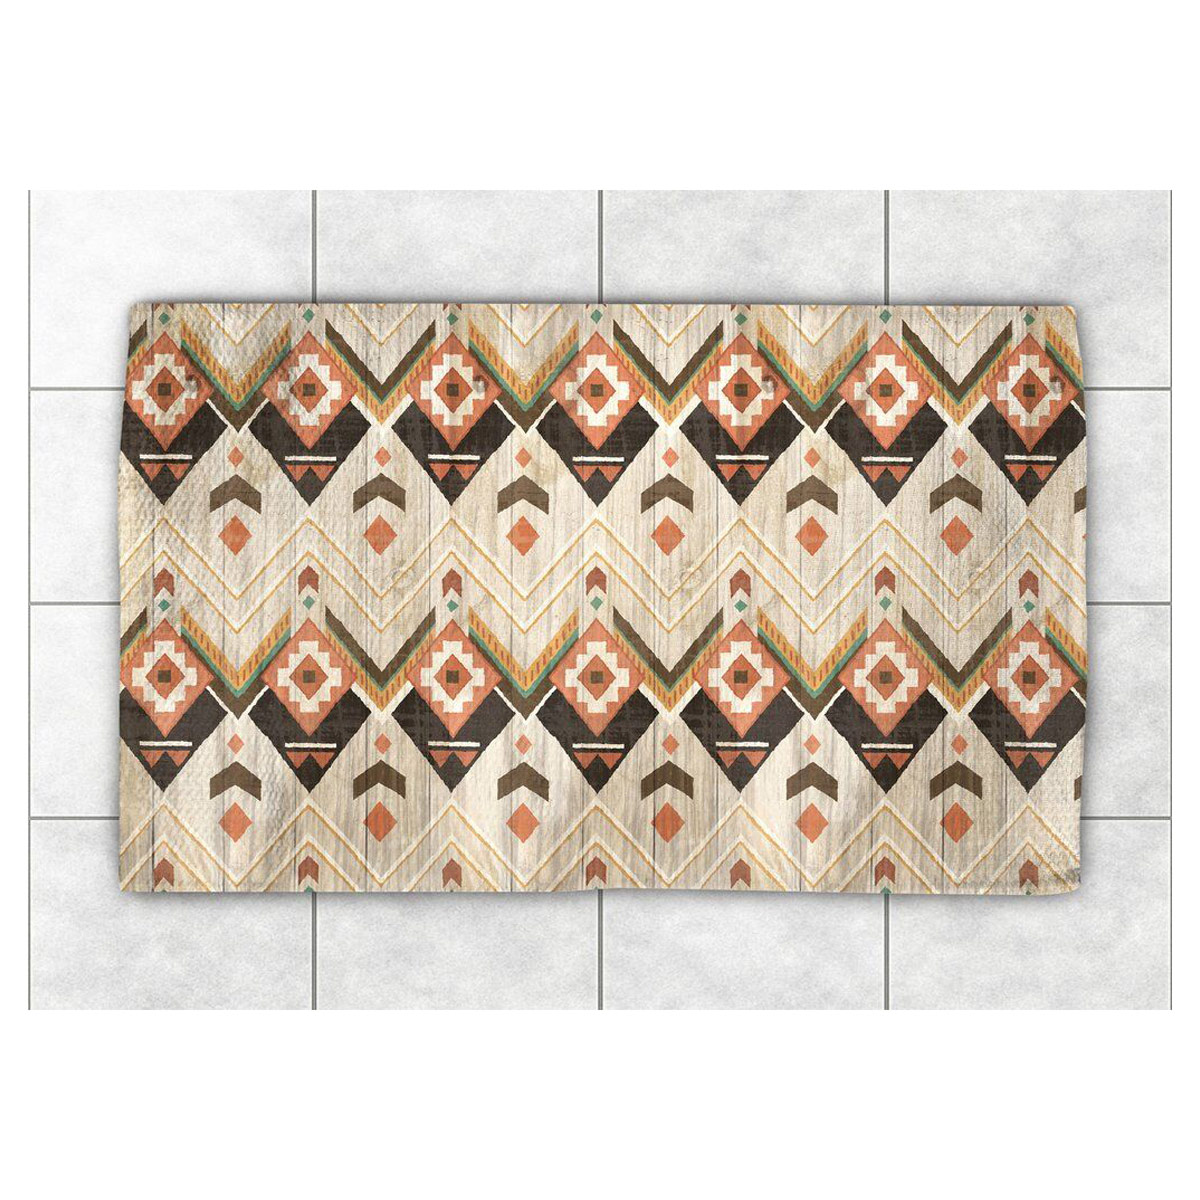 Chevron Kitchen Rug: Rustic Chevron Rug